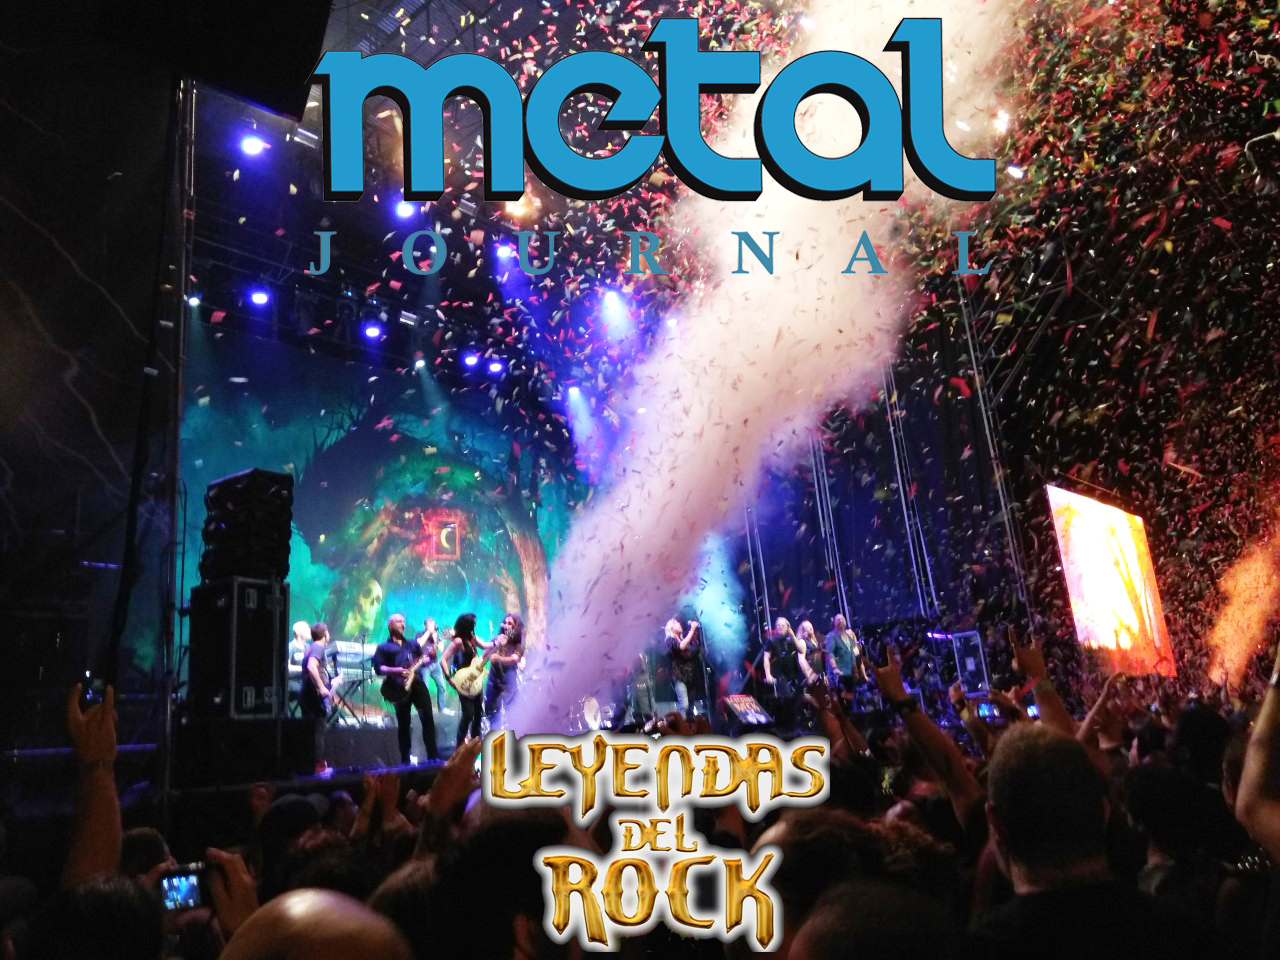 leyendas del rock 2019 metal journal pic 9